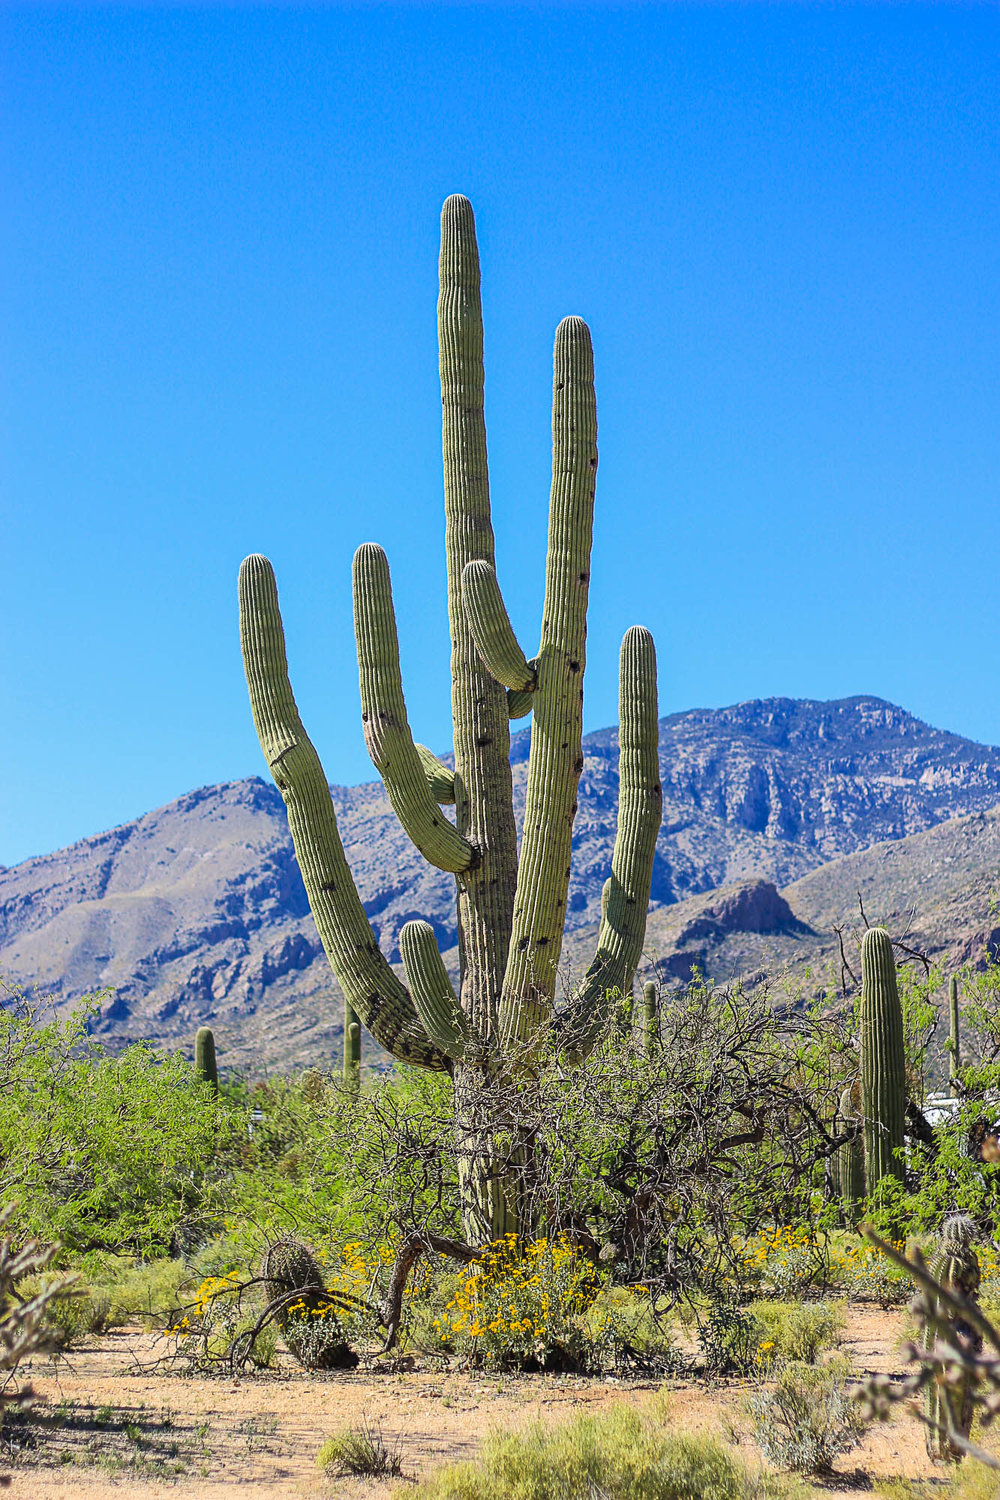 Sabino Canyon, Saguaro Cactus, Tucson, Arizona, Desert, Santa Catalina Mountains, Things to Do in Arizona, Coronado National Forest, nuventuretravels.com